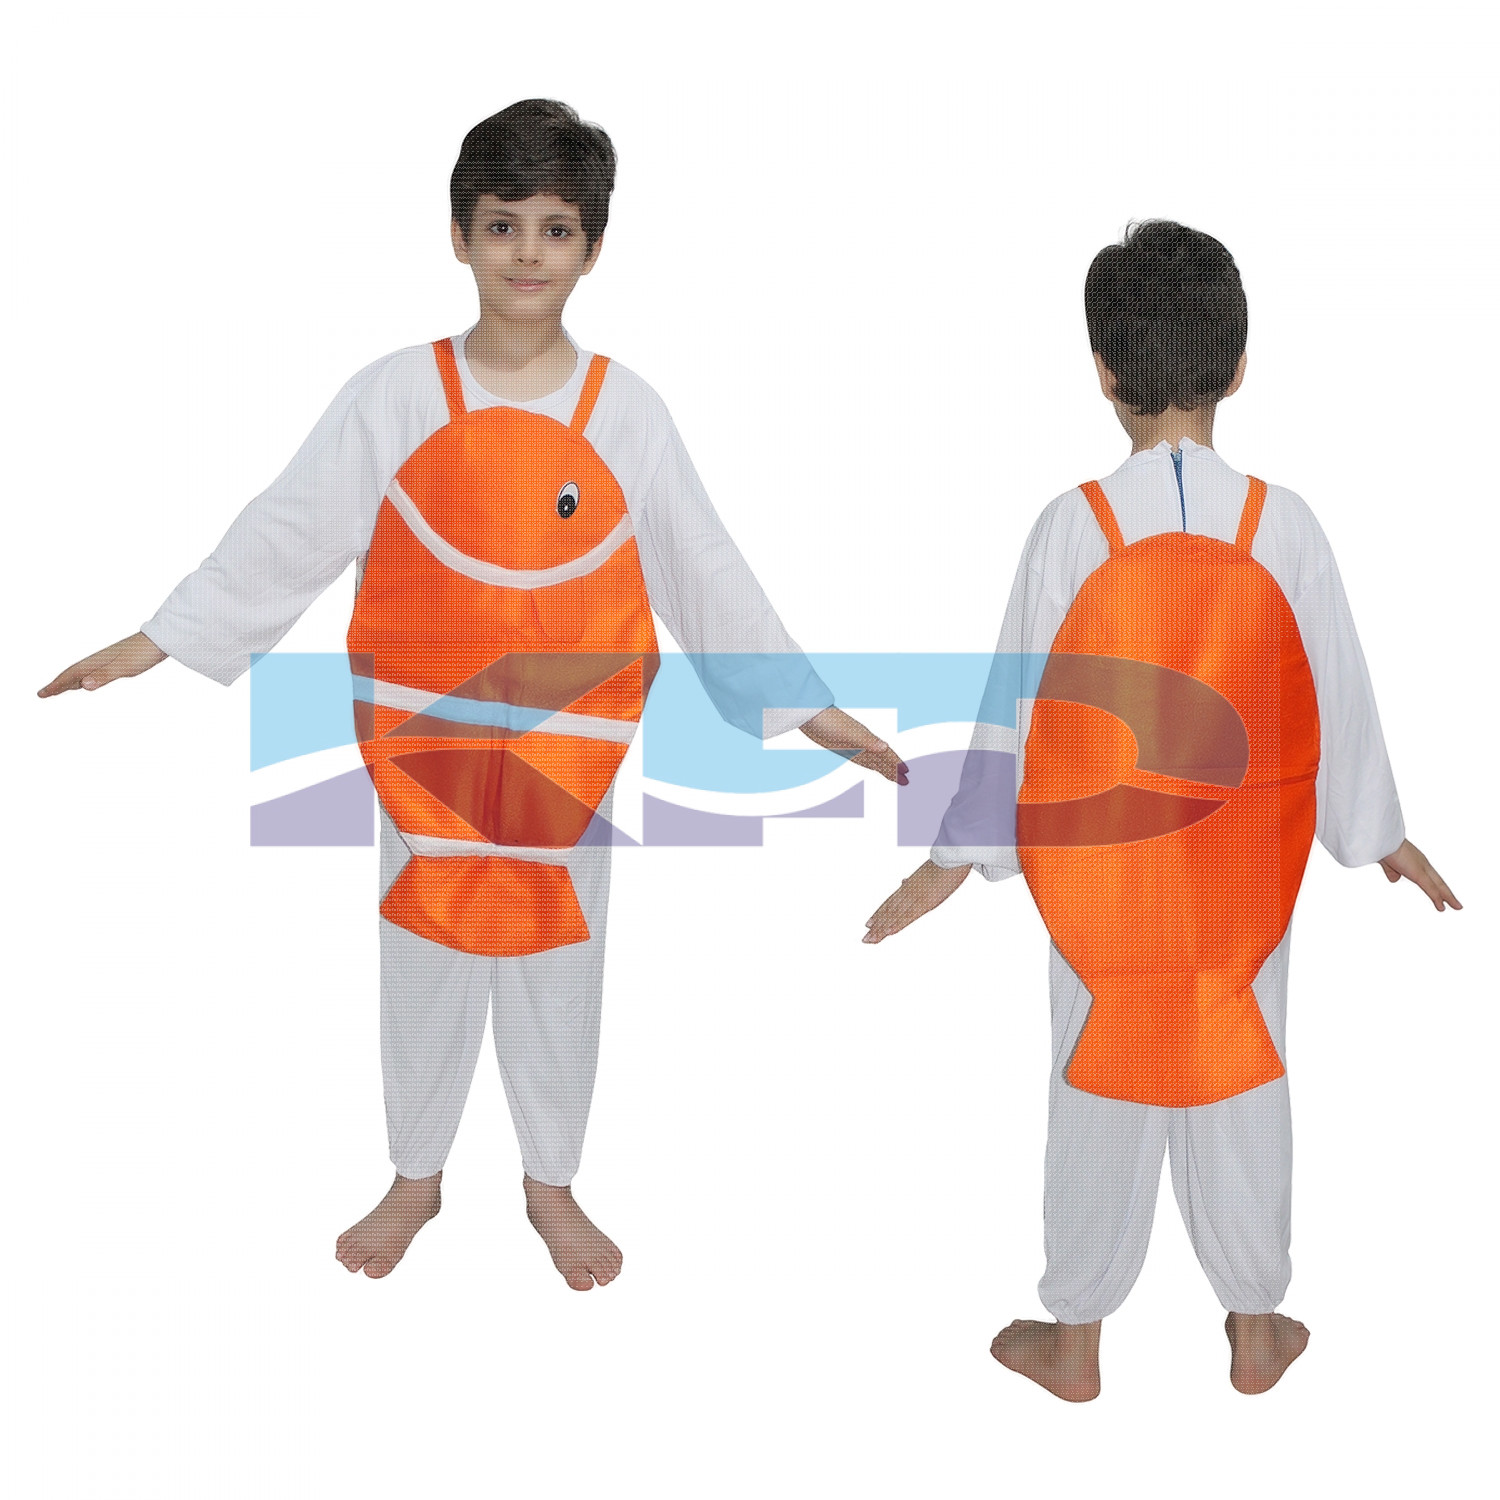 Nemo Fish fancy dress for kids,Insect Costume for School Annual function/Theme Party/Competition/Stage Shows Dress